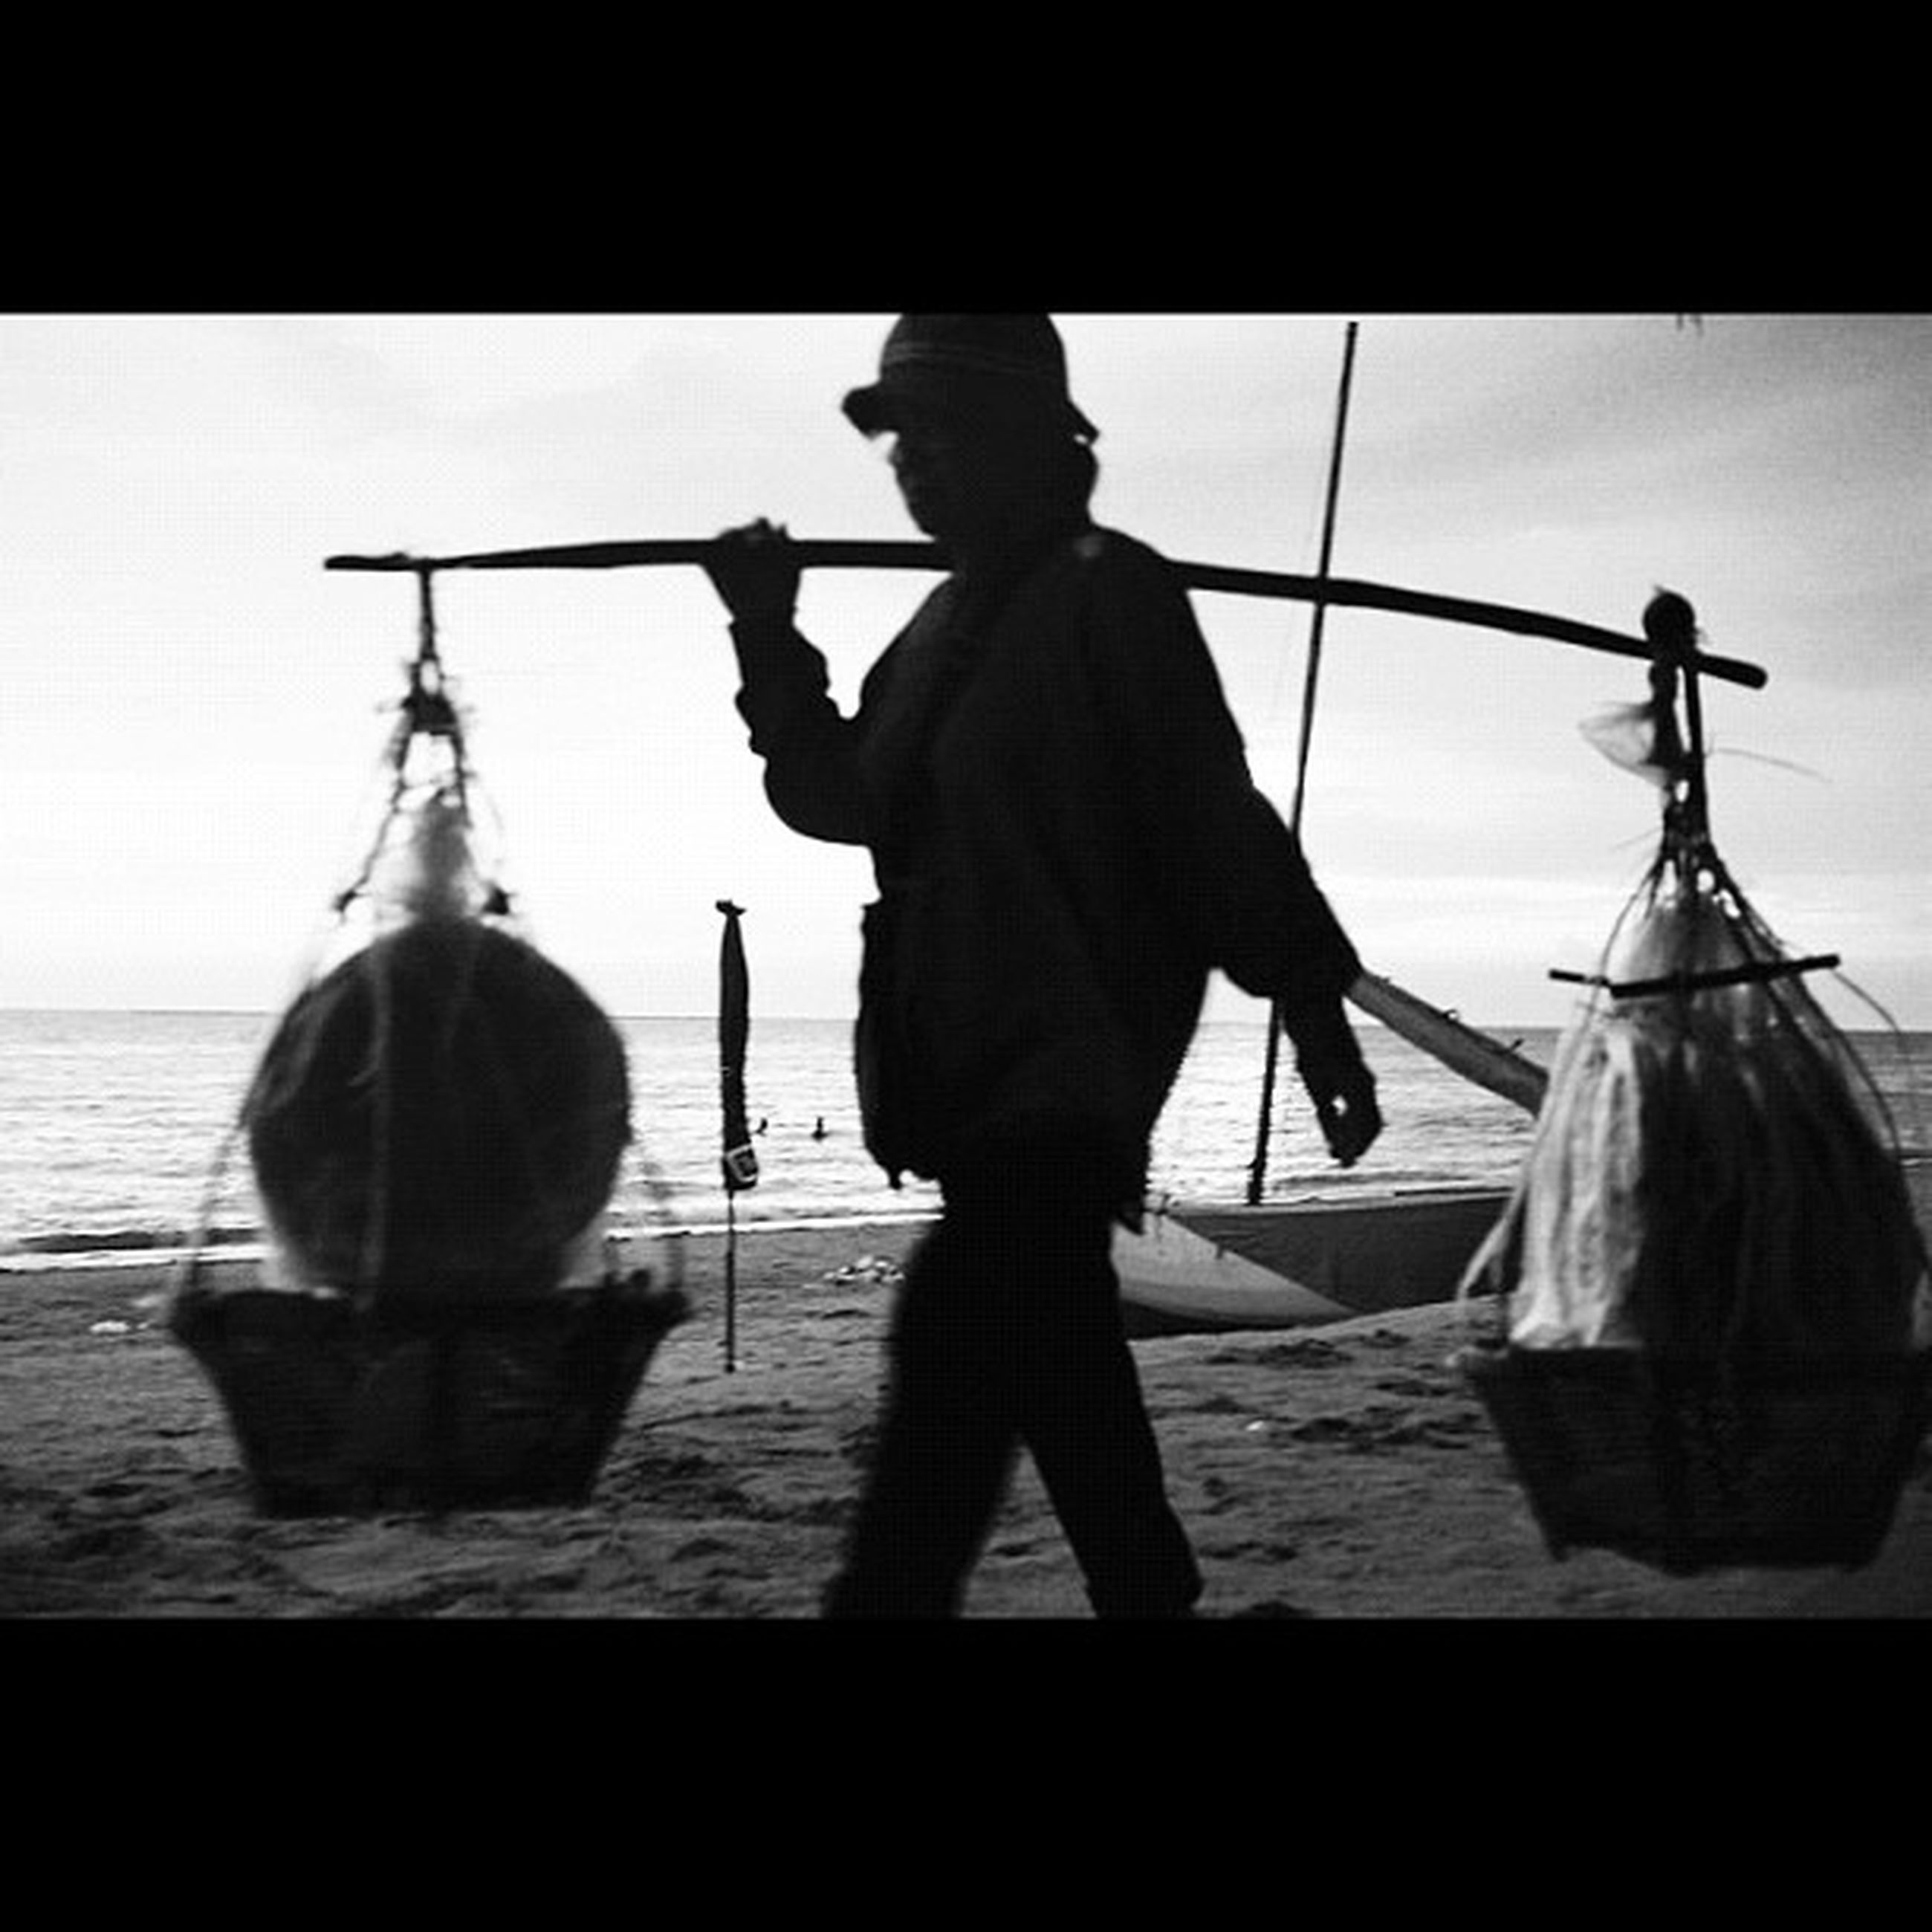 men, sea, transfer print, water, lifestyles, full length, leisure activity, rear view, auto post production filter, silhouette, sky, nautical vessel, person, holding, standing, occupation, transportation